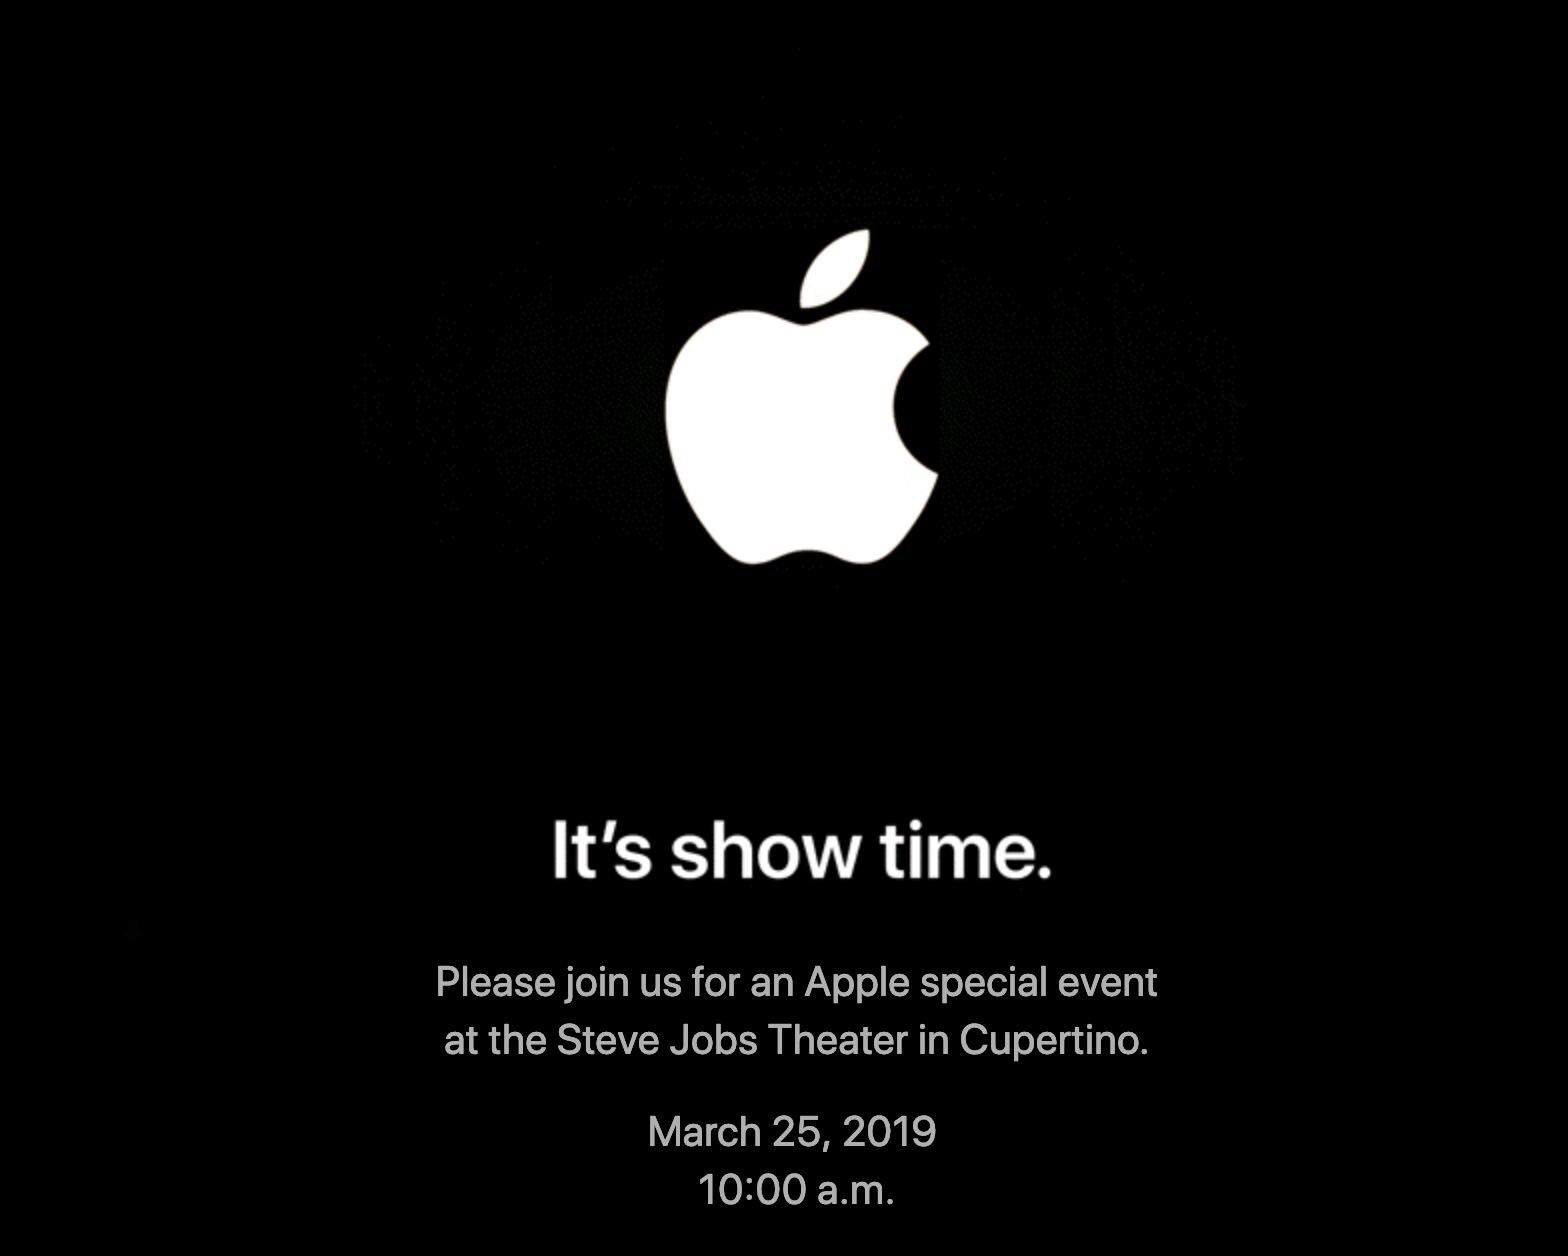 """Please join us for an Apple special event at the Steve Jobs Theater in Cupertino.  March 25, 2019  10:00 a.m."" https://t.co/qV03MNB5dd"